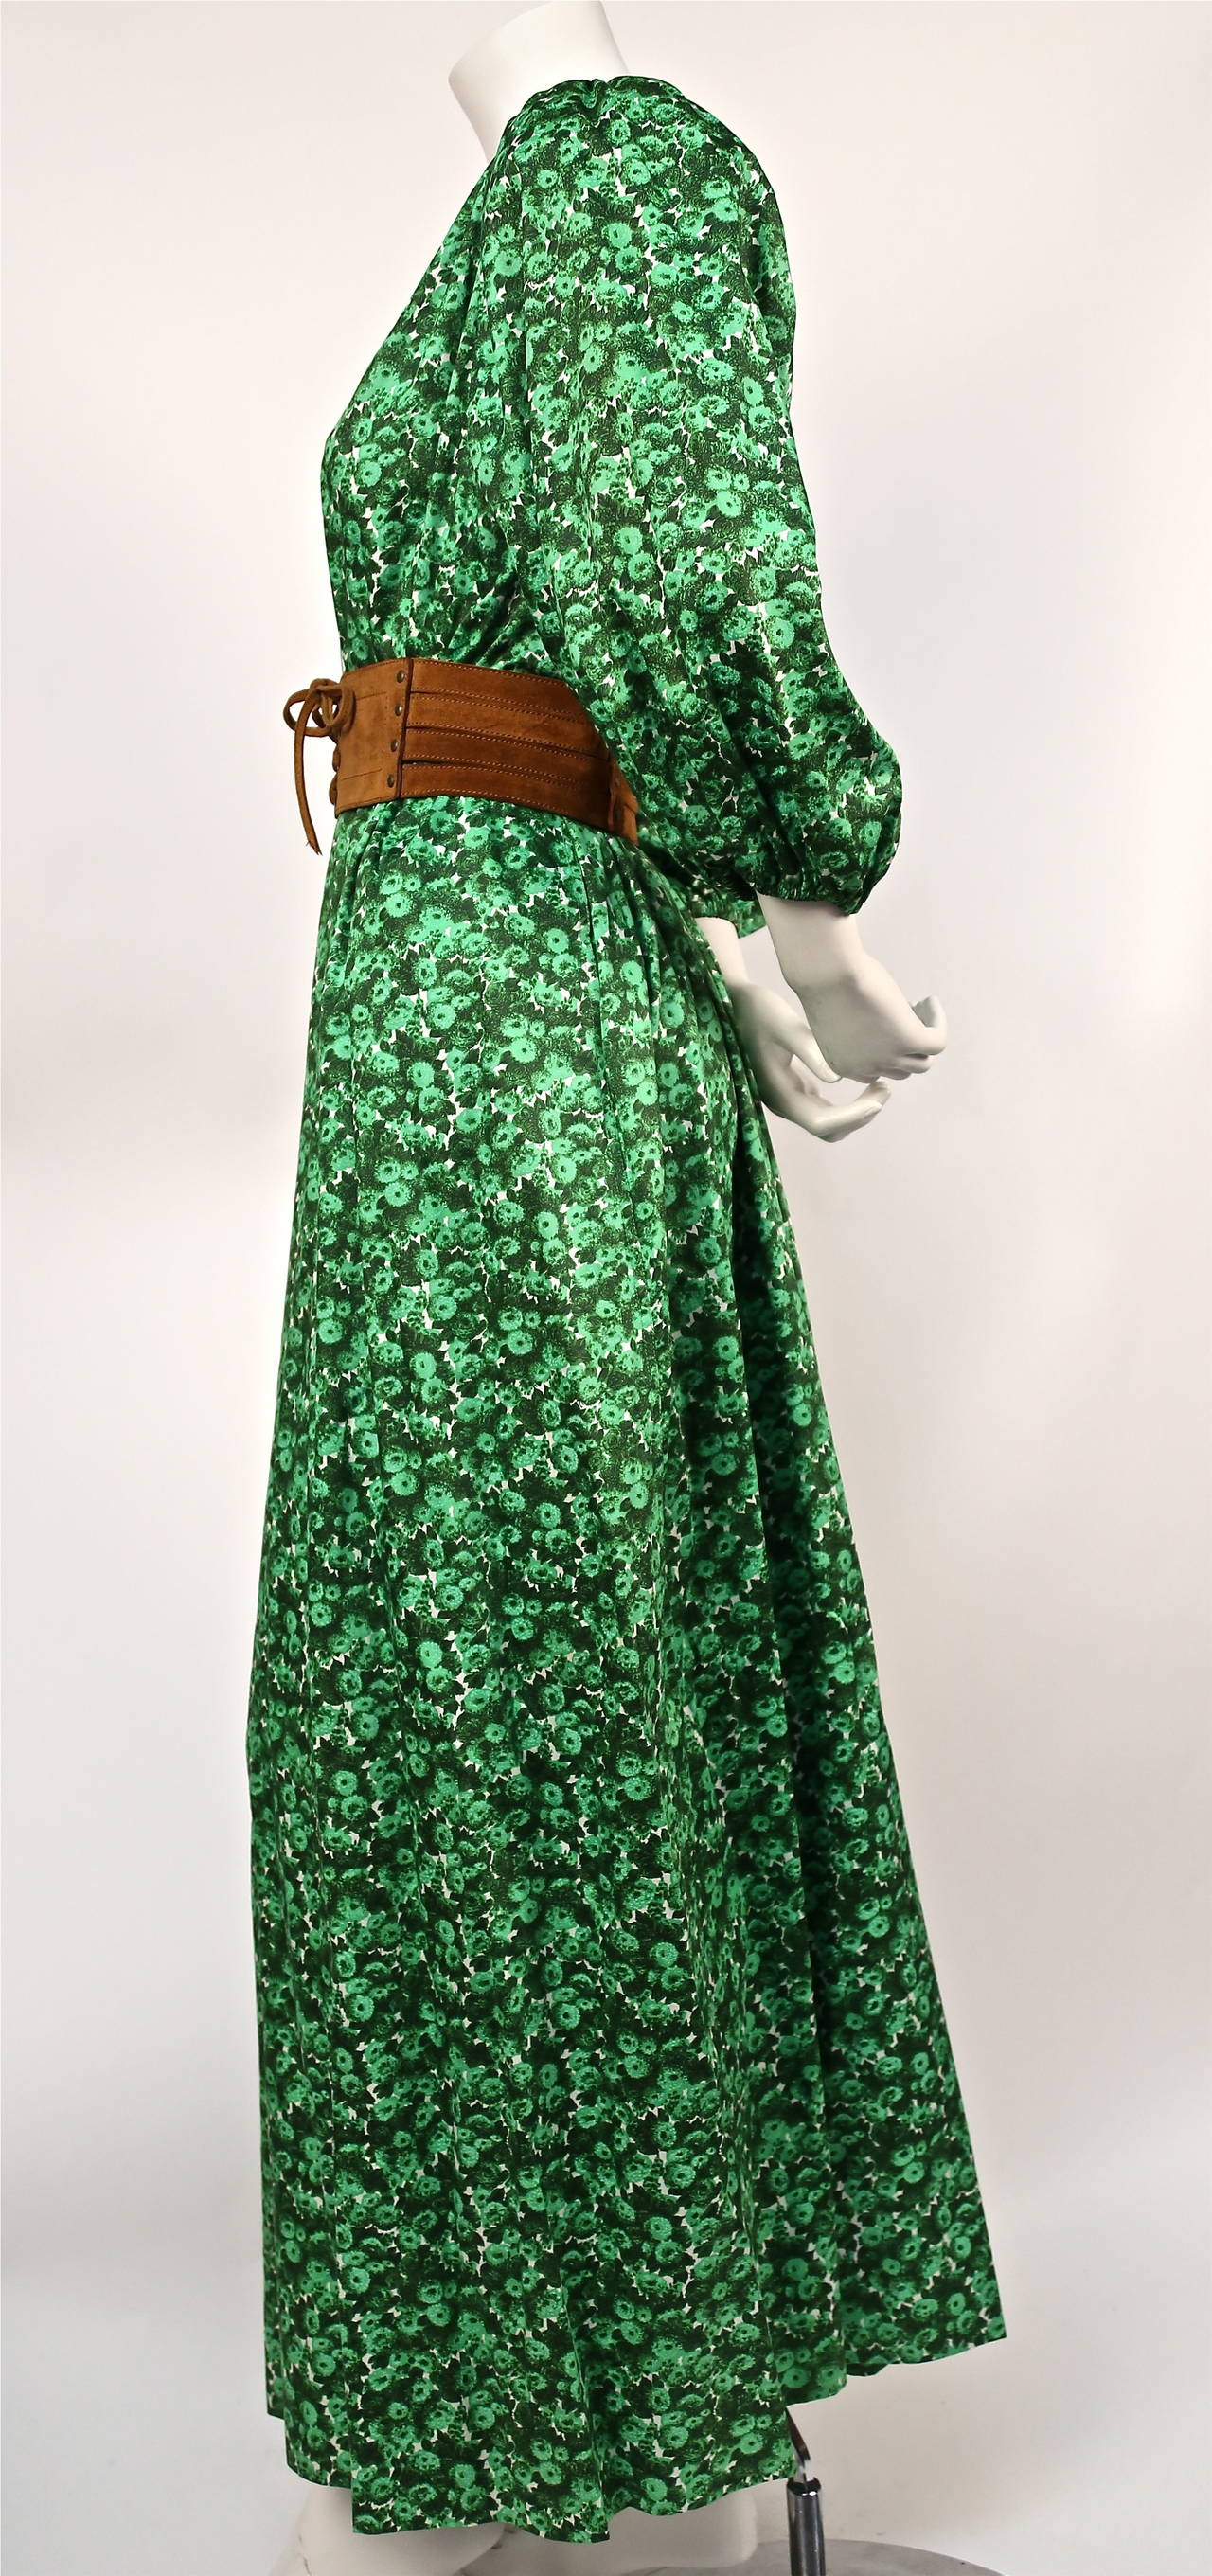 1970's YVES SAINT LAURENT green floral cotton dress with deep V neckline 2